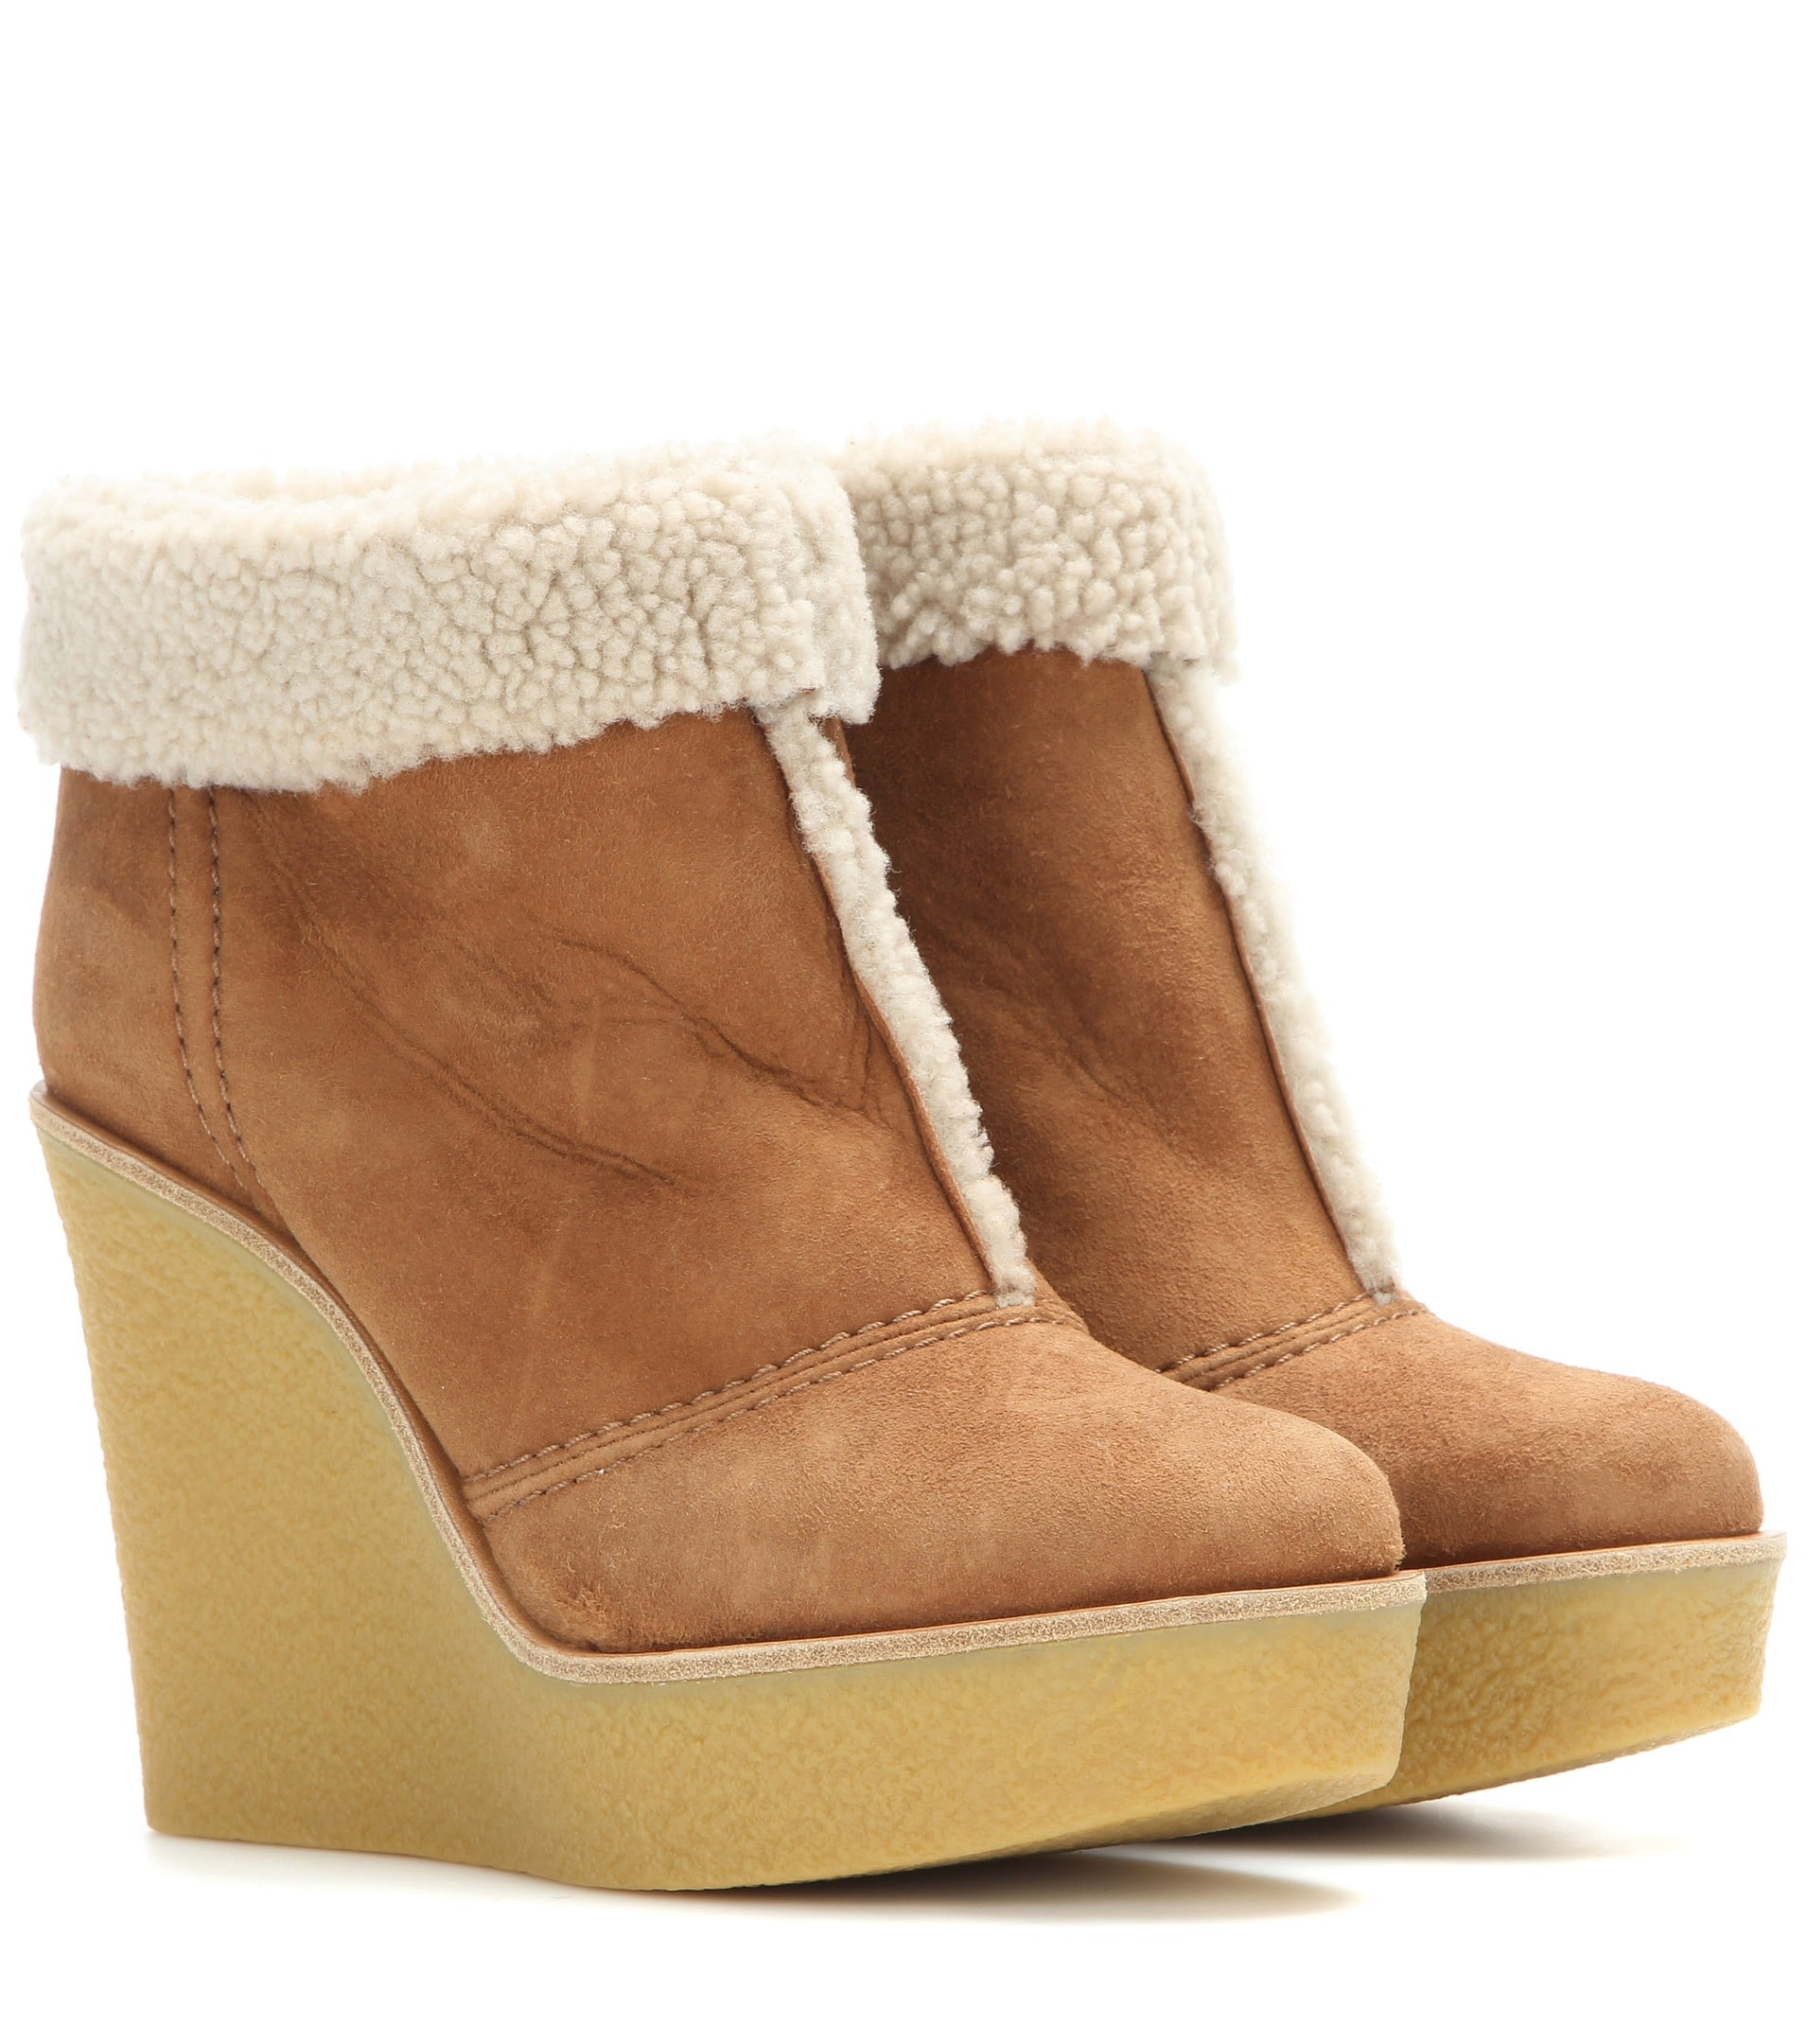 8a3fa39cd5a Chloé Suede and Shearling Wedge Boots | Jennifer Lopez Swapped Heels ...